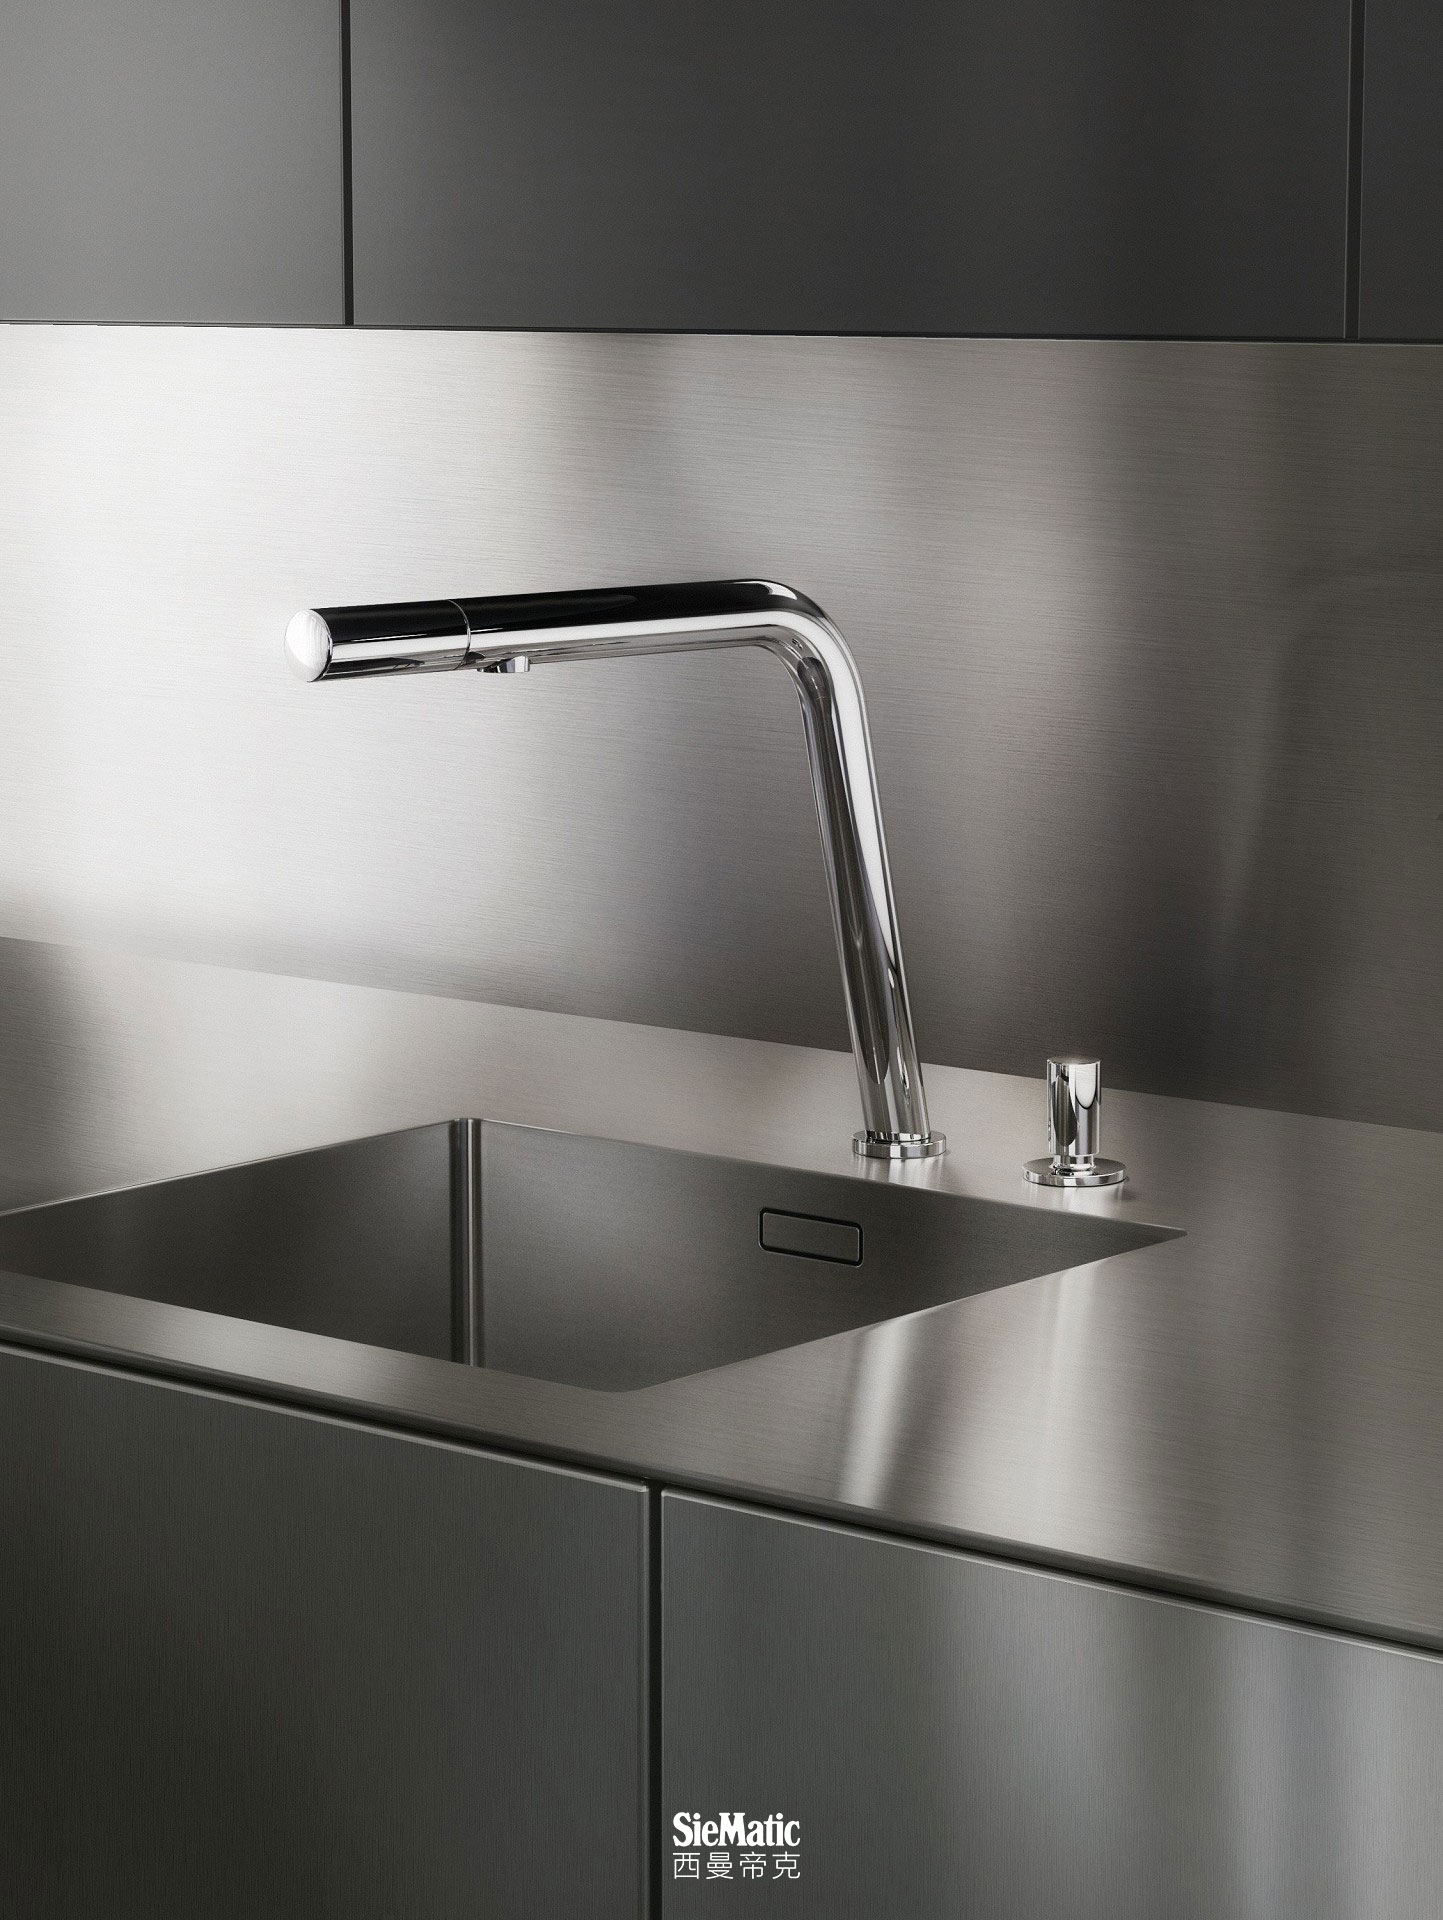 SieMatic kitchen countertops and side panels in professional stainless steel